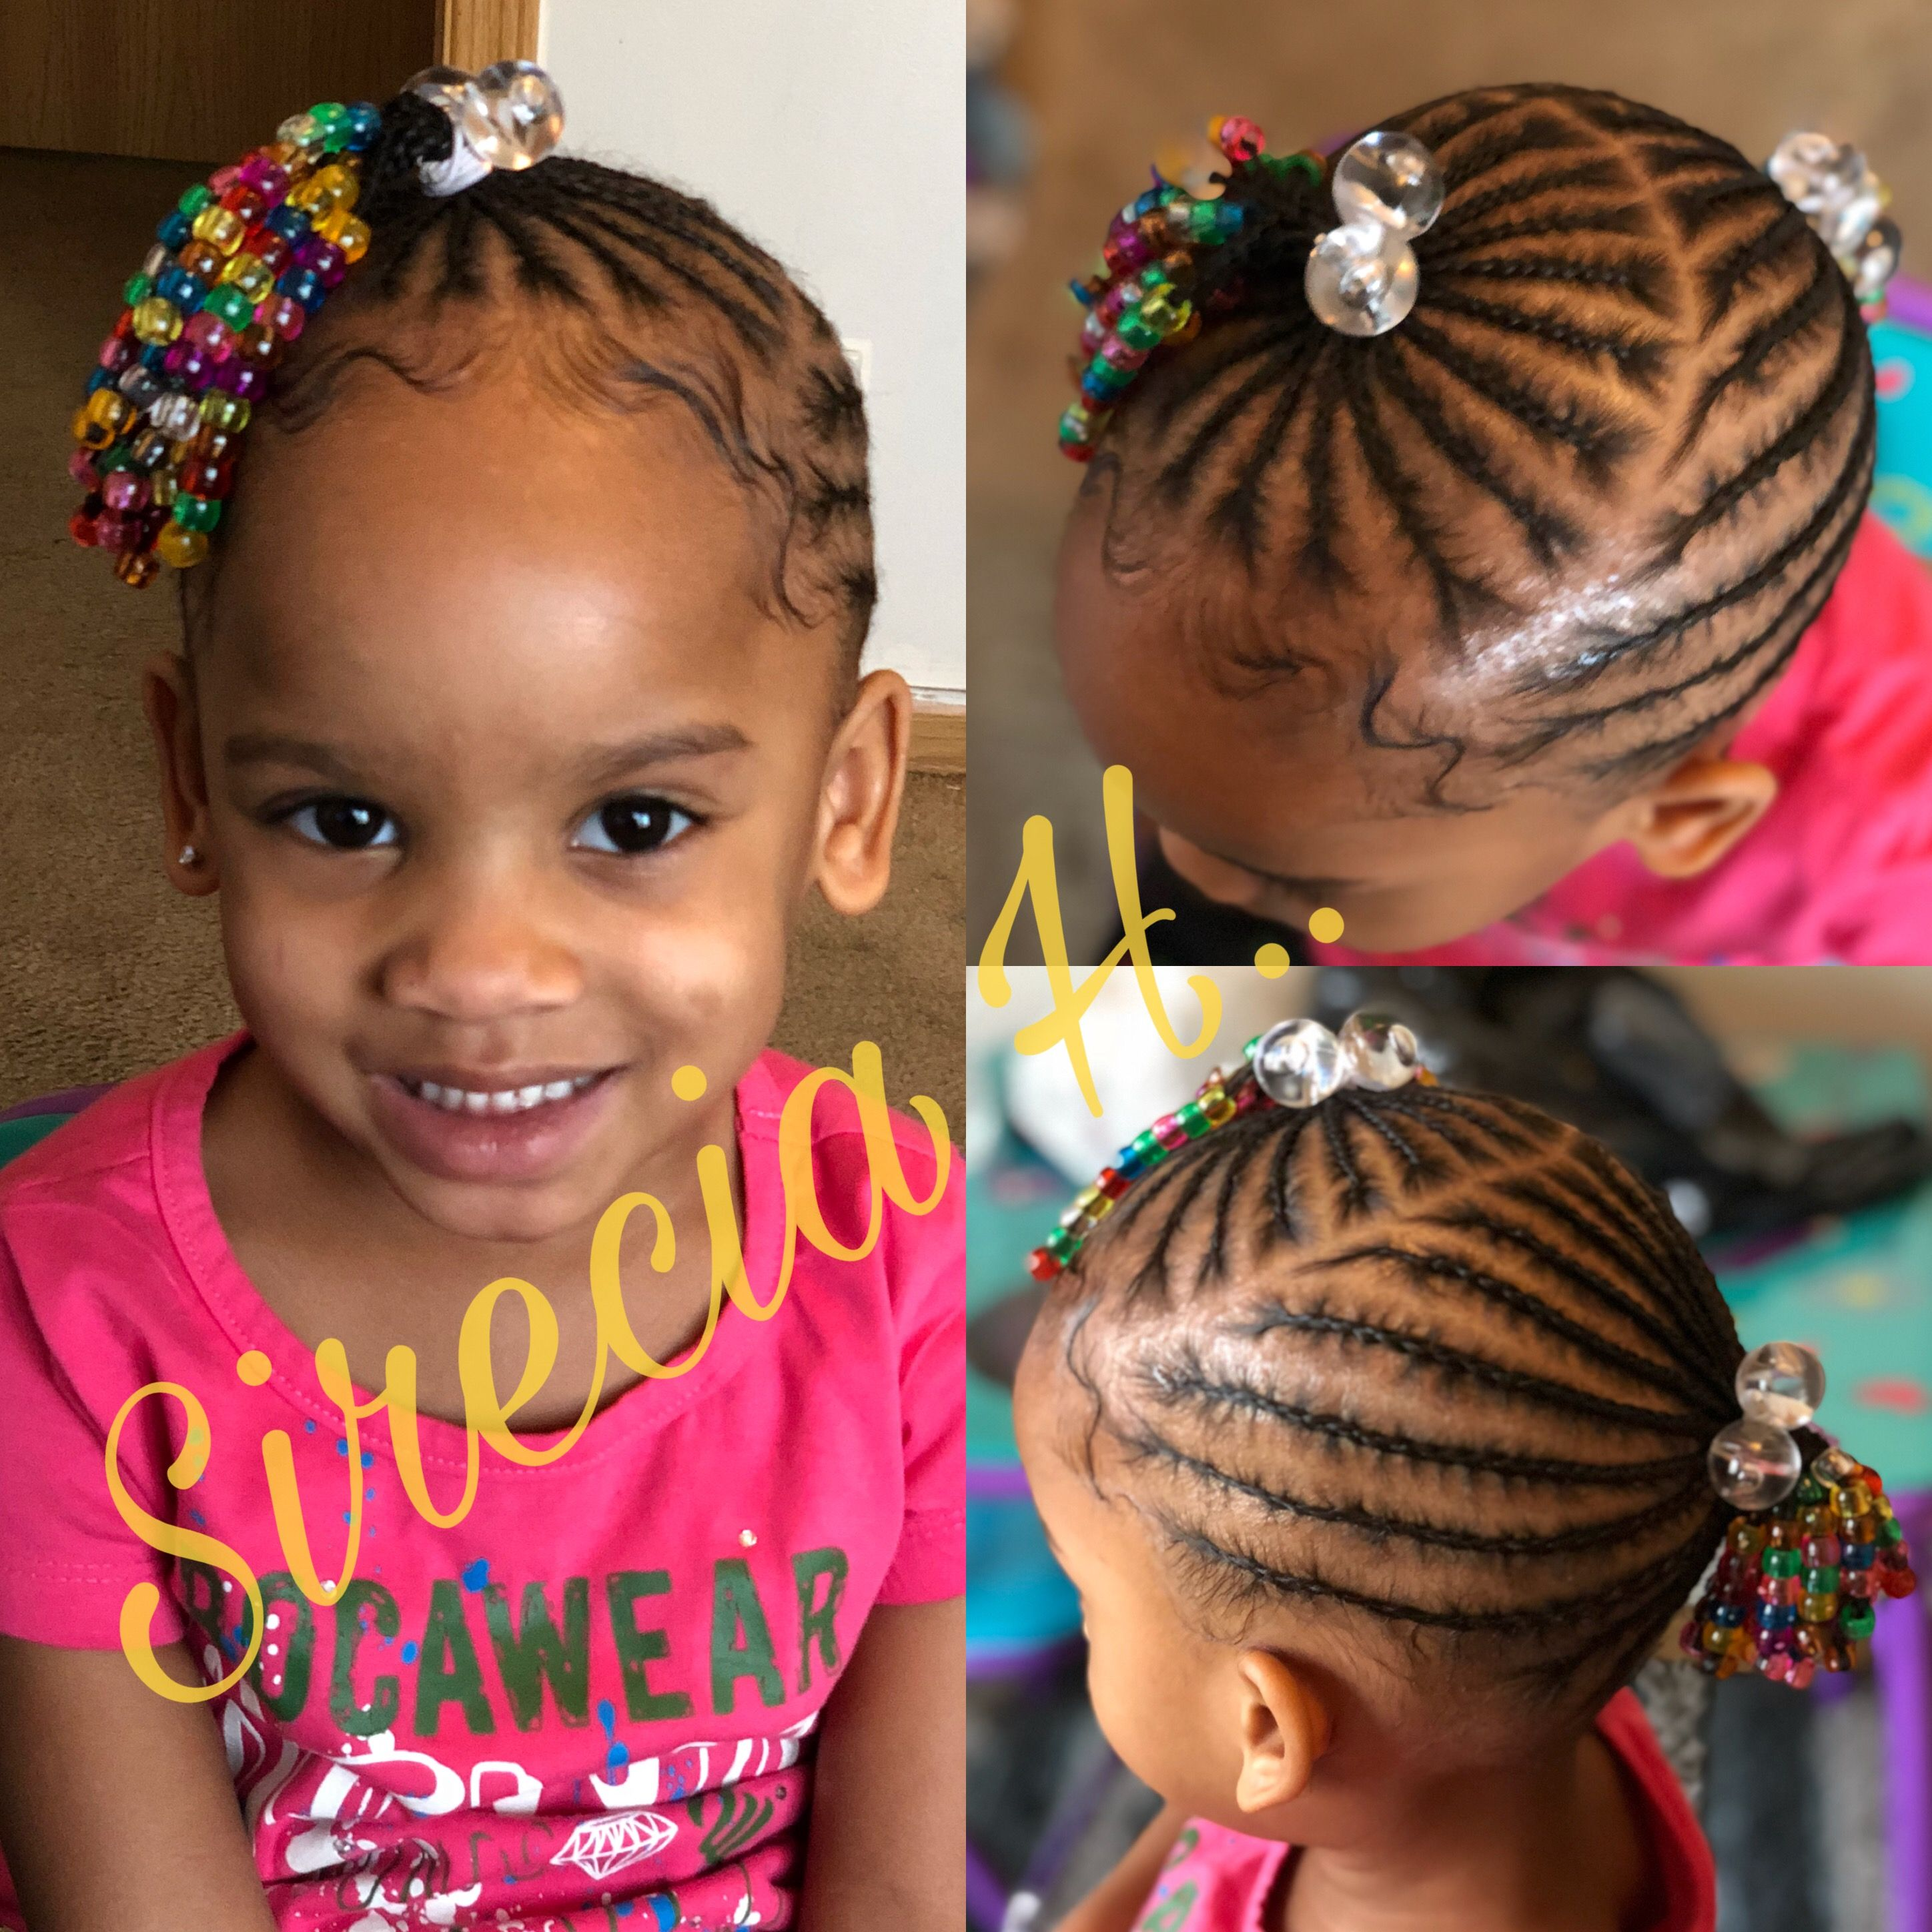 I Like The Baby Hair Toddler Braided Hairstyles Baby Girl Hairstyles Kids Hairstyles